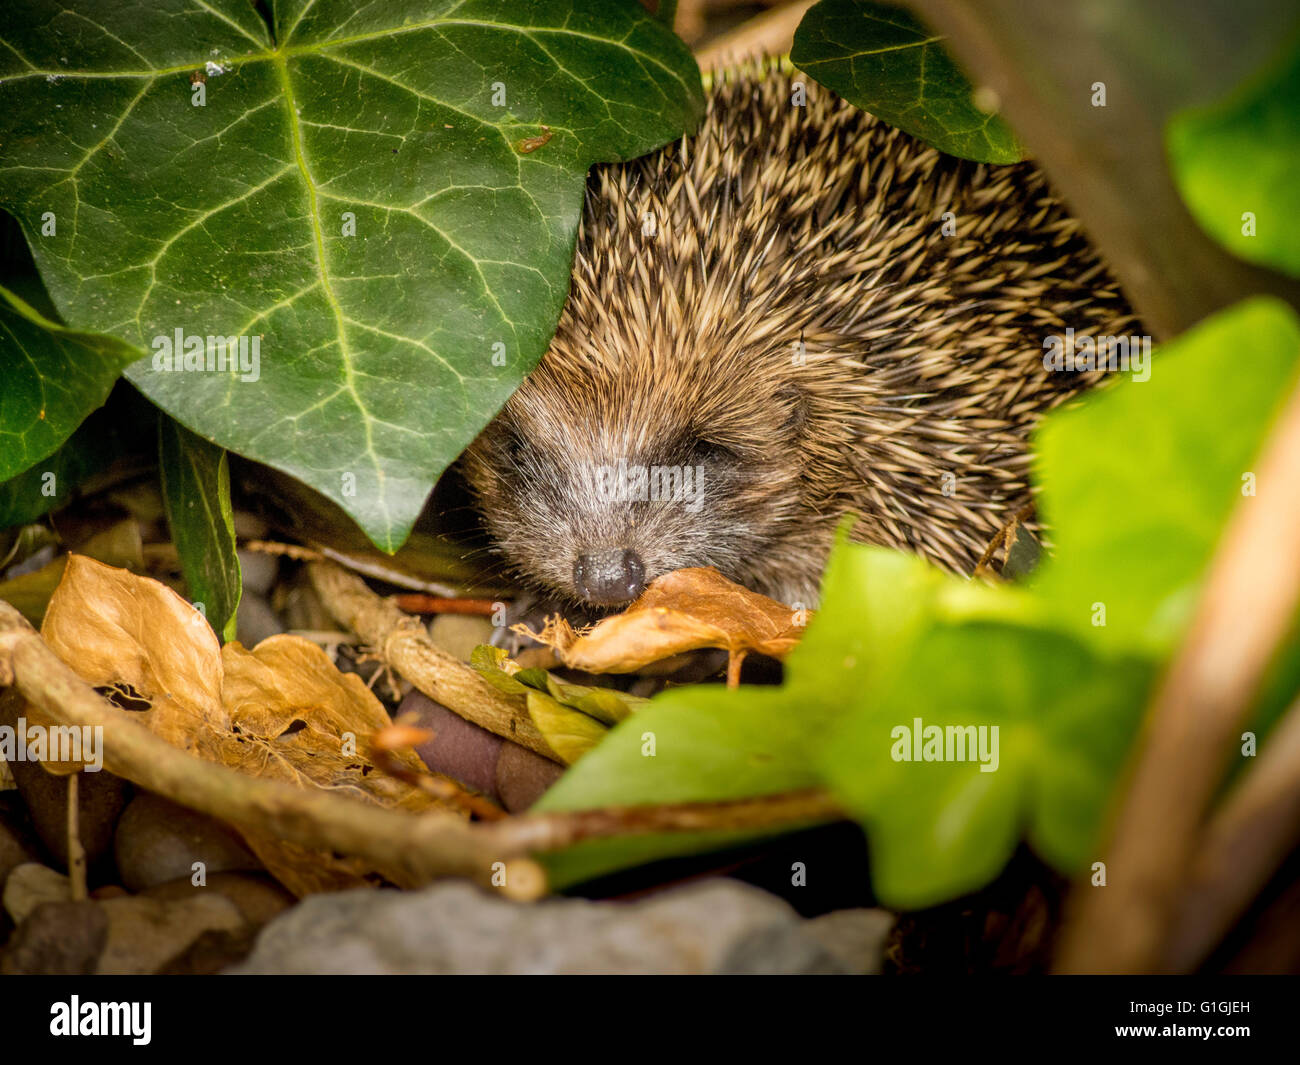 Hedgehog sleeping in leaves in garden Stock Photo